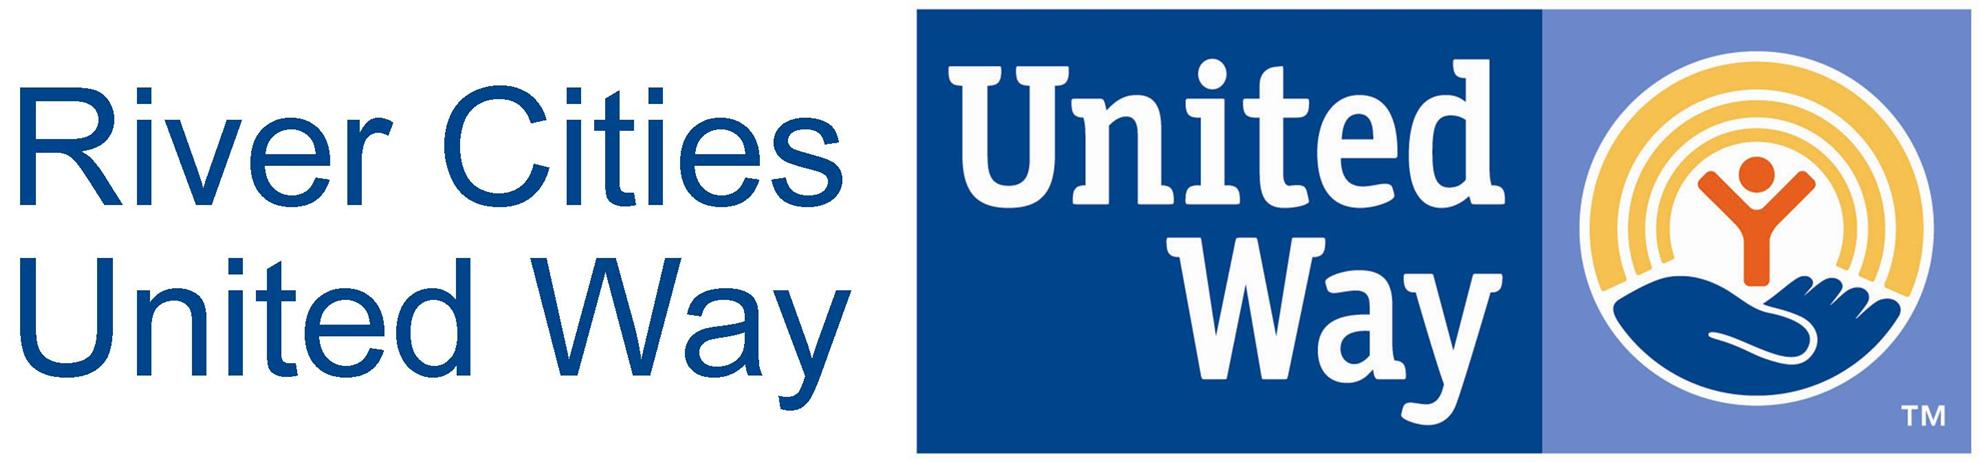 River Cities United Way Logo